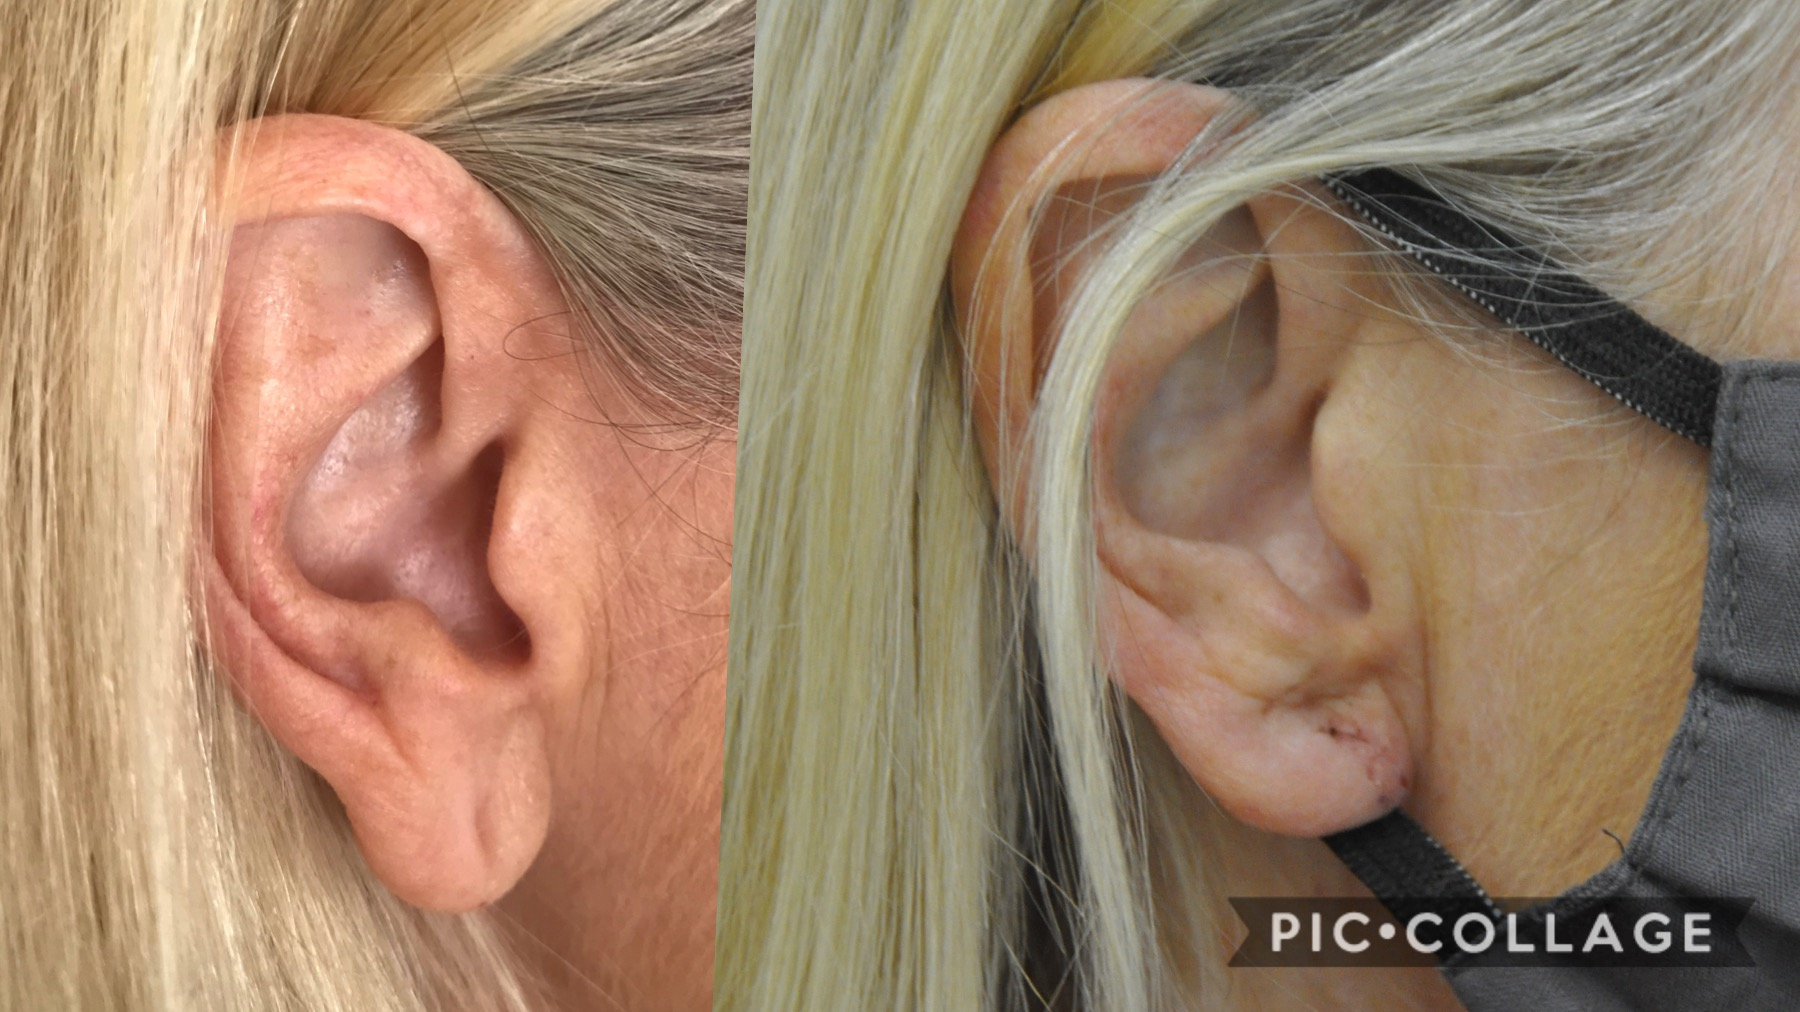 Earlobe reduction: Wedge excision